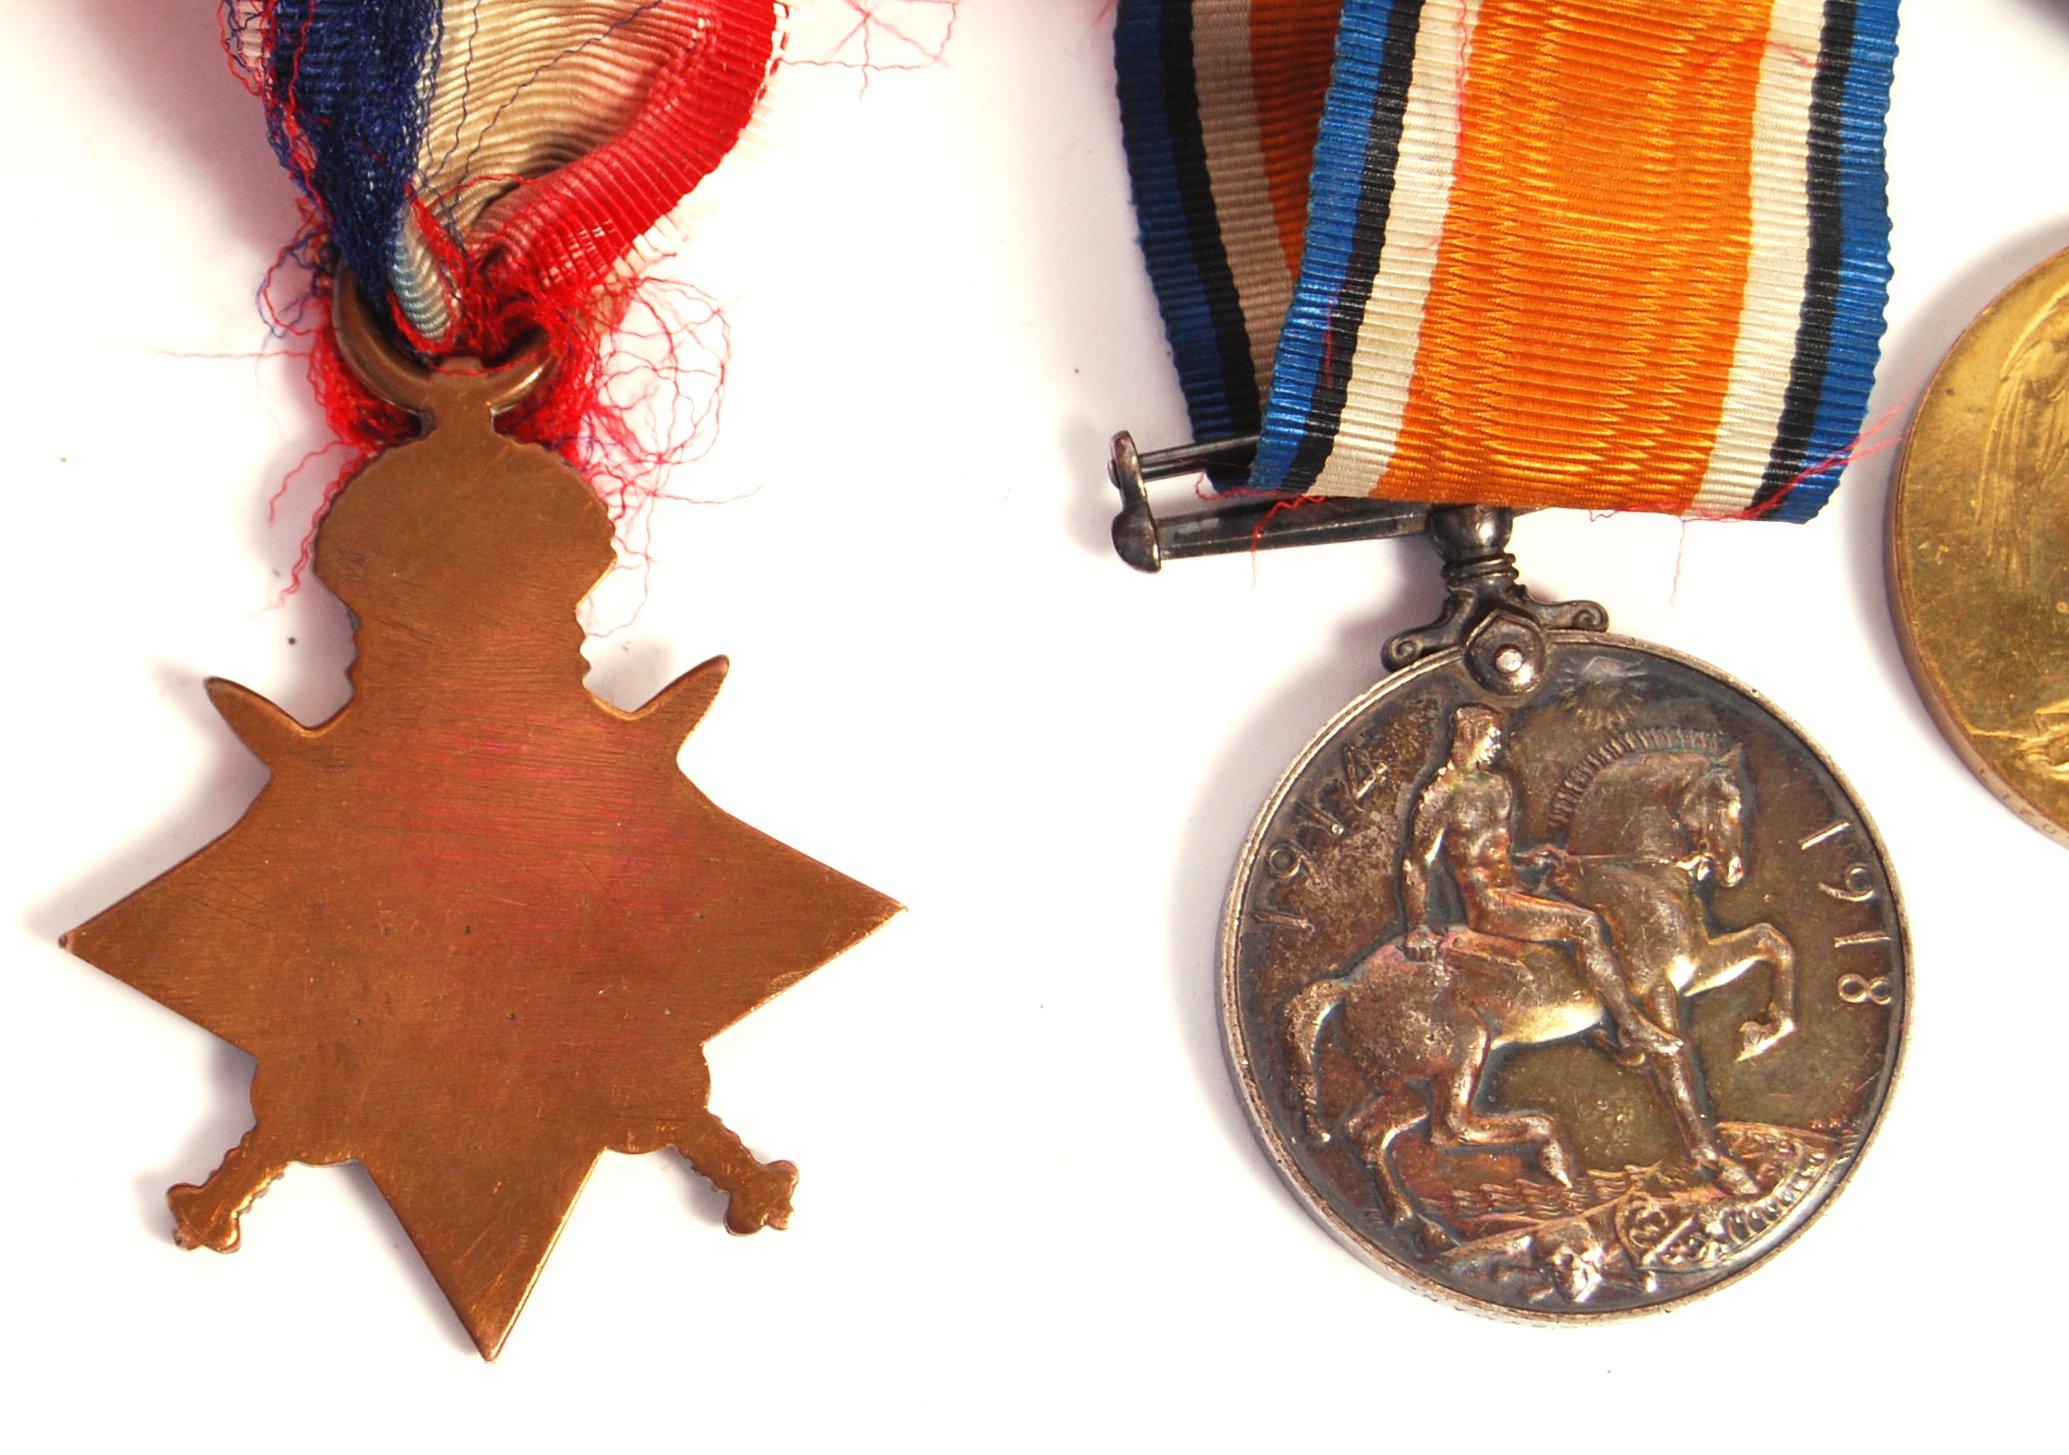 WWI FIRST WORLD WAR MEDAL GROUP - ORDER OF THE STAR OF ROMANIA - Image 8 of 8